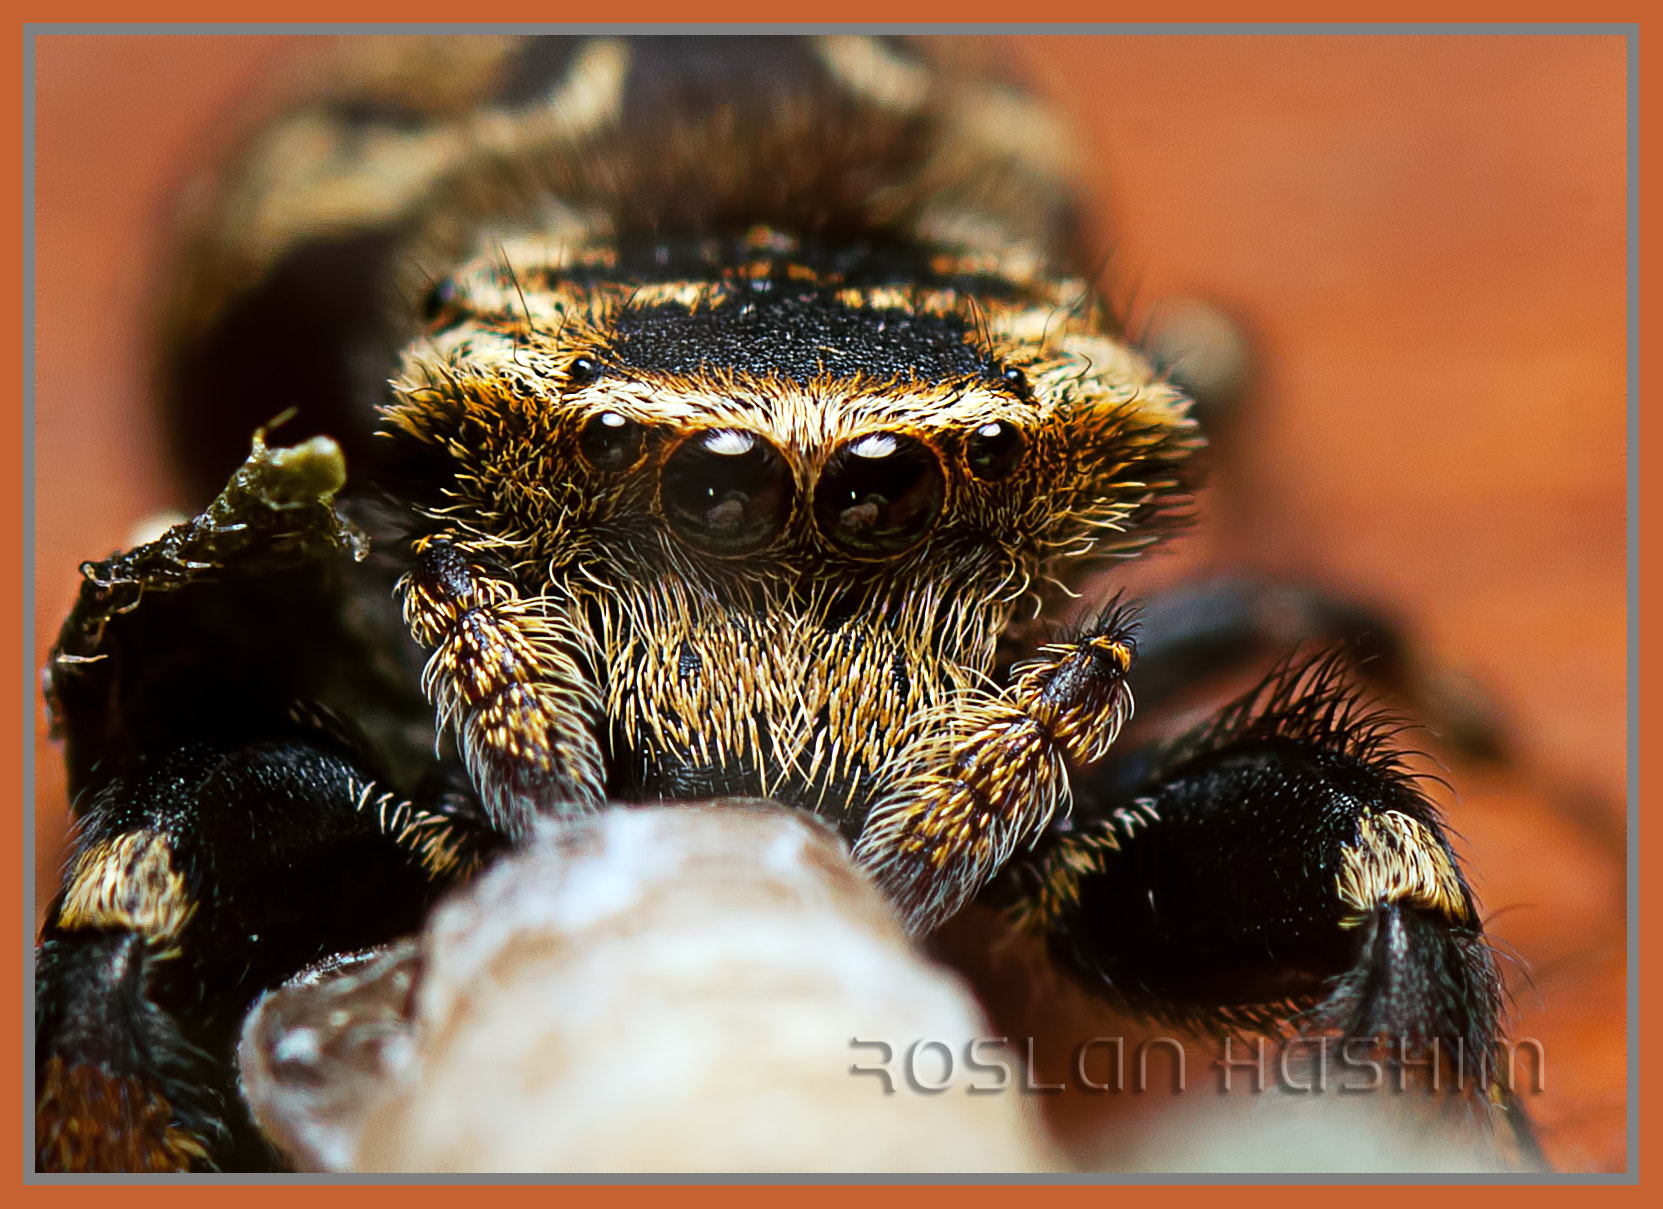 Photograph Jumping Spider by Roslan Hashim on 500px